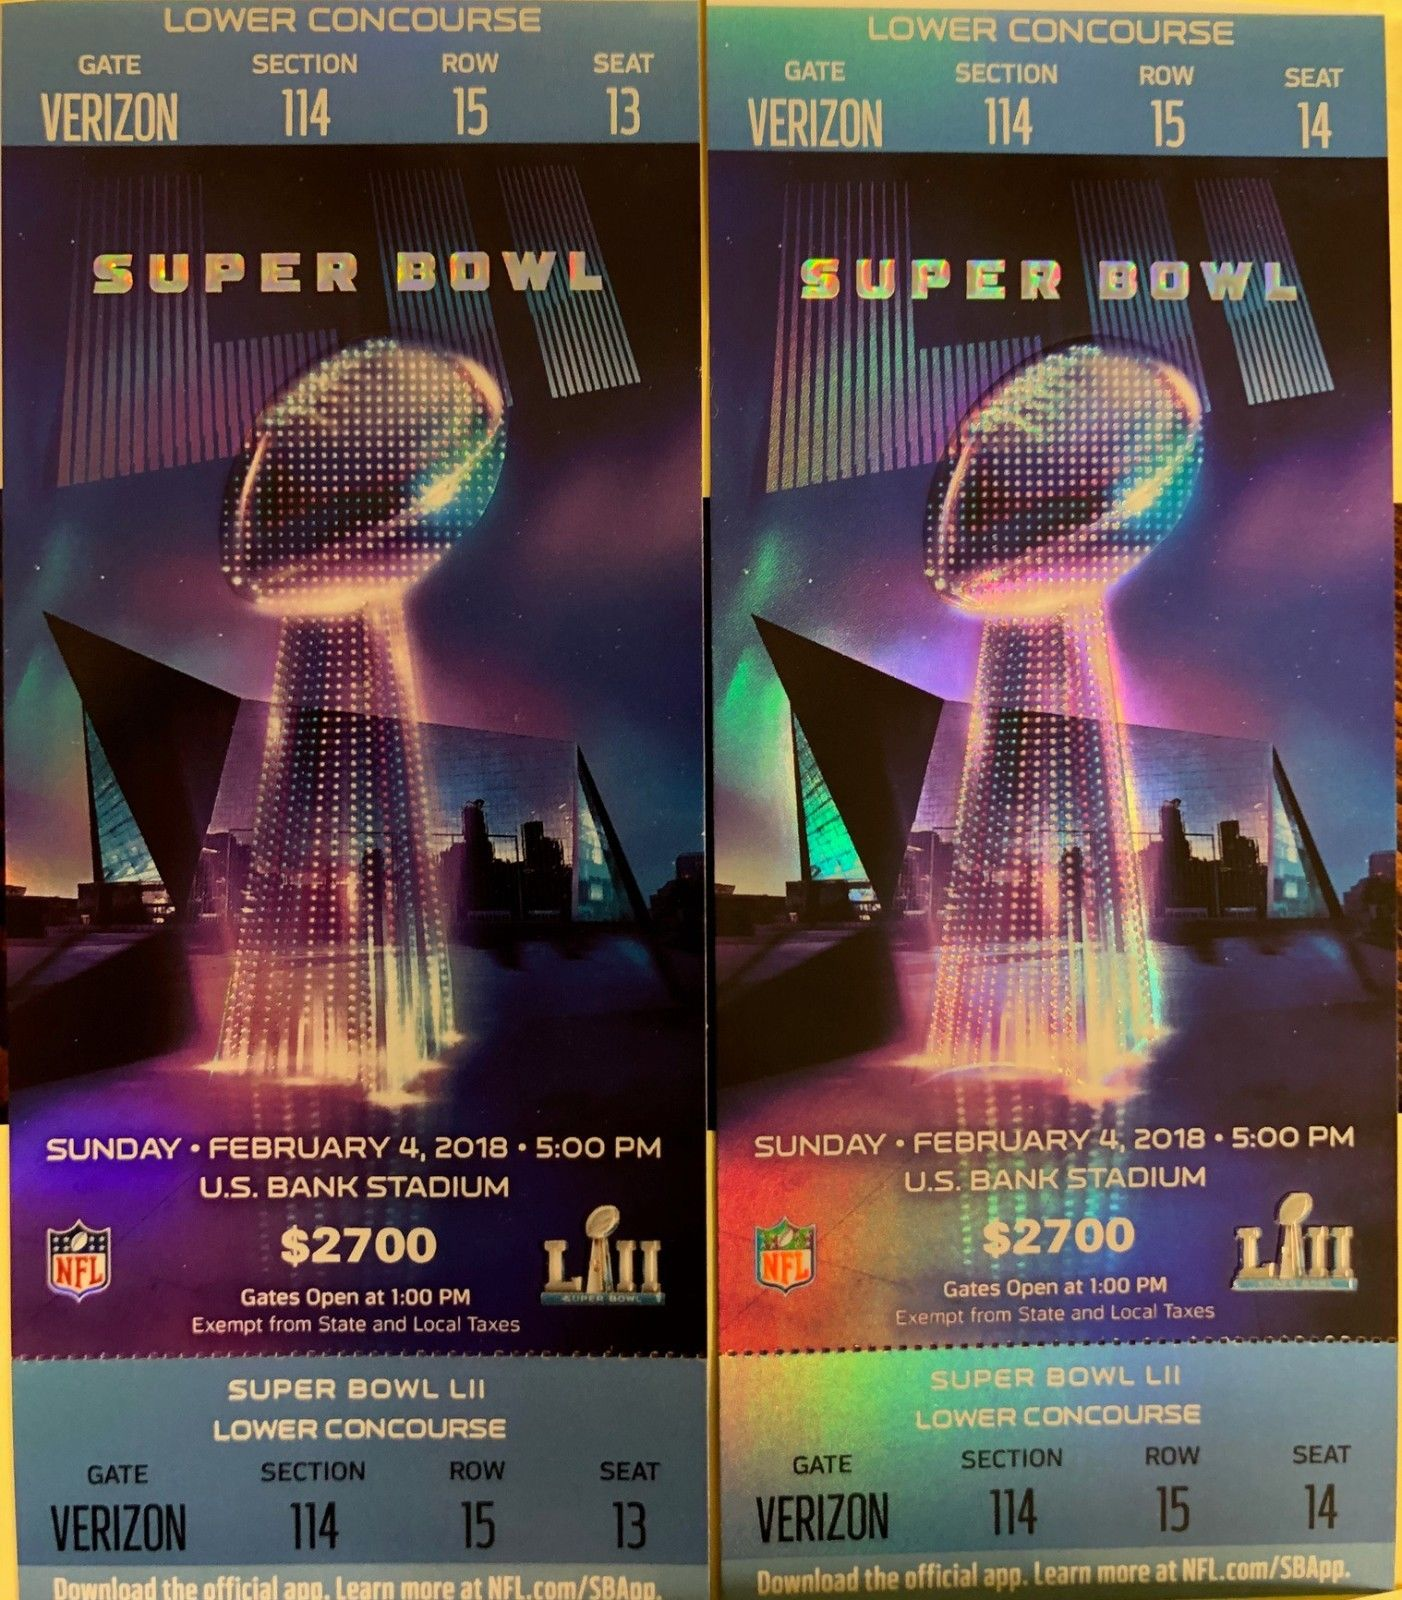 SB LII TICKET